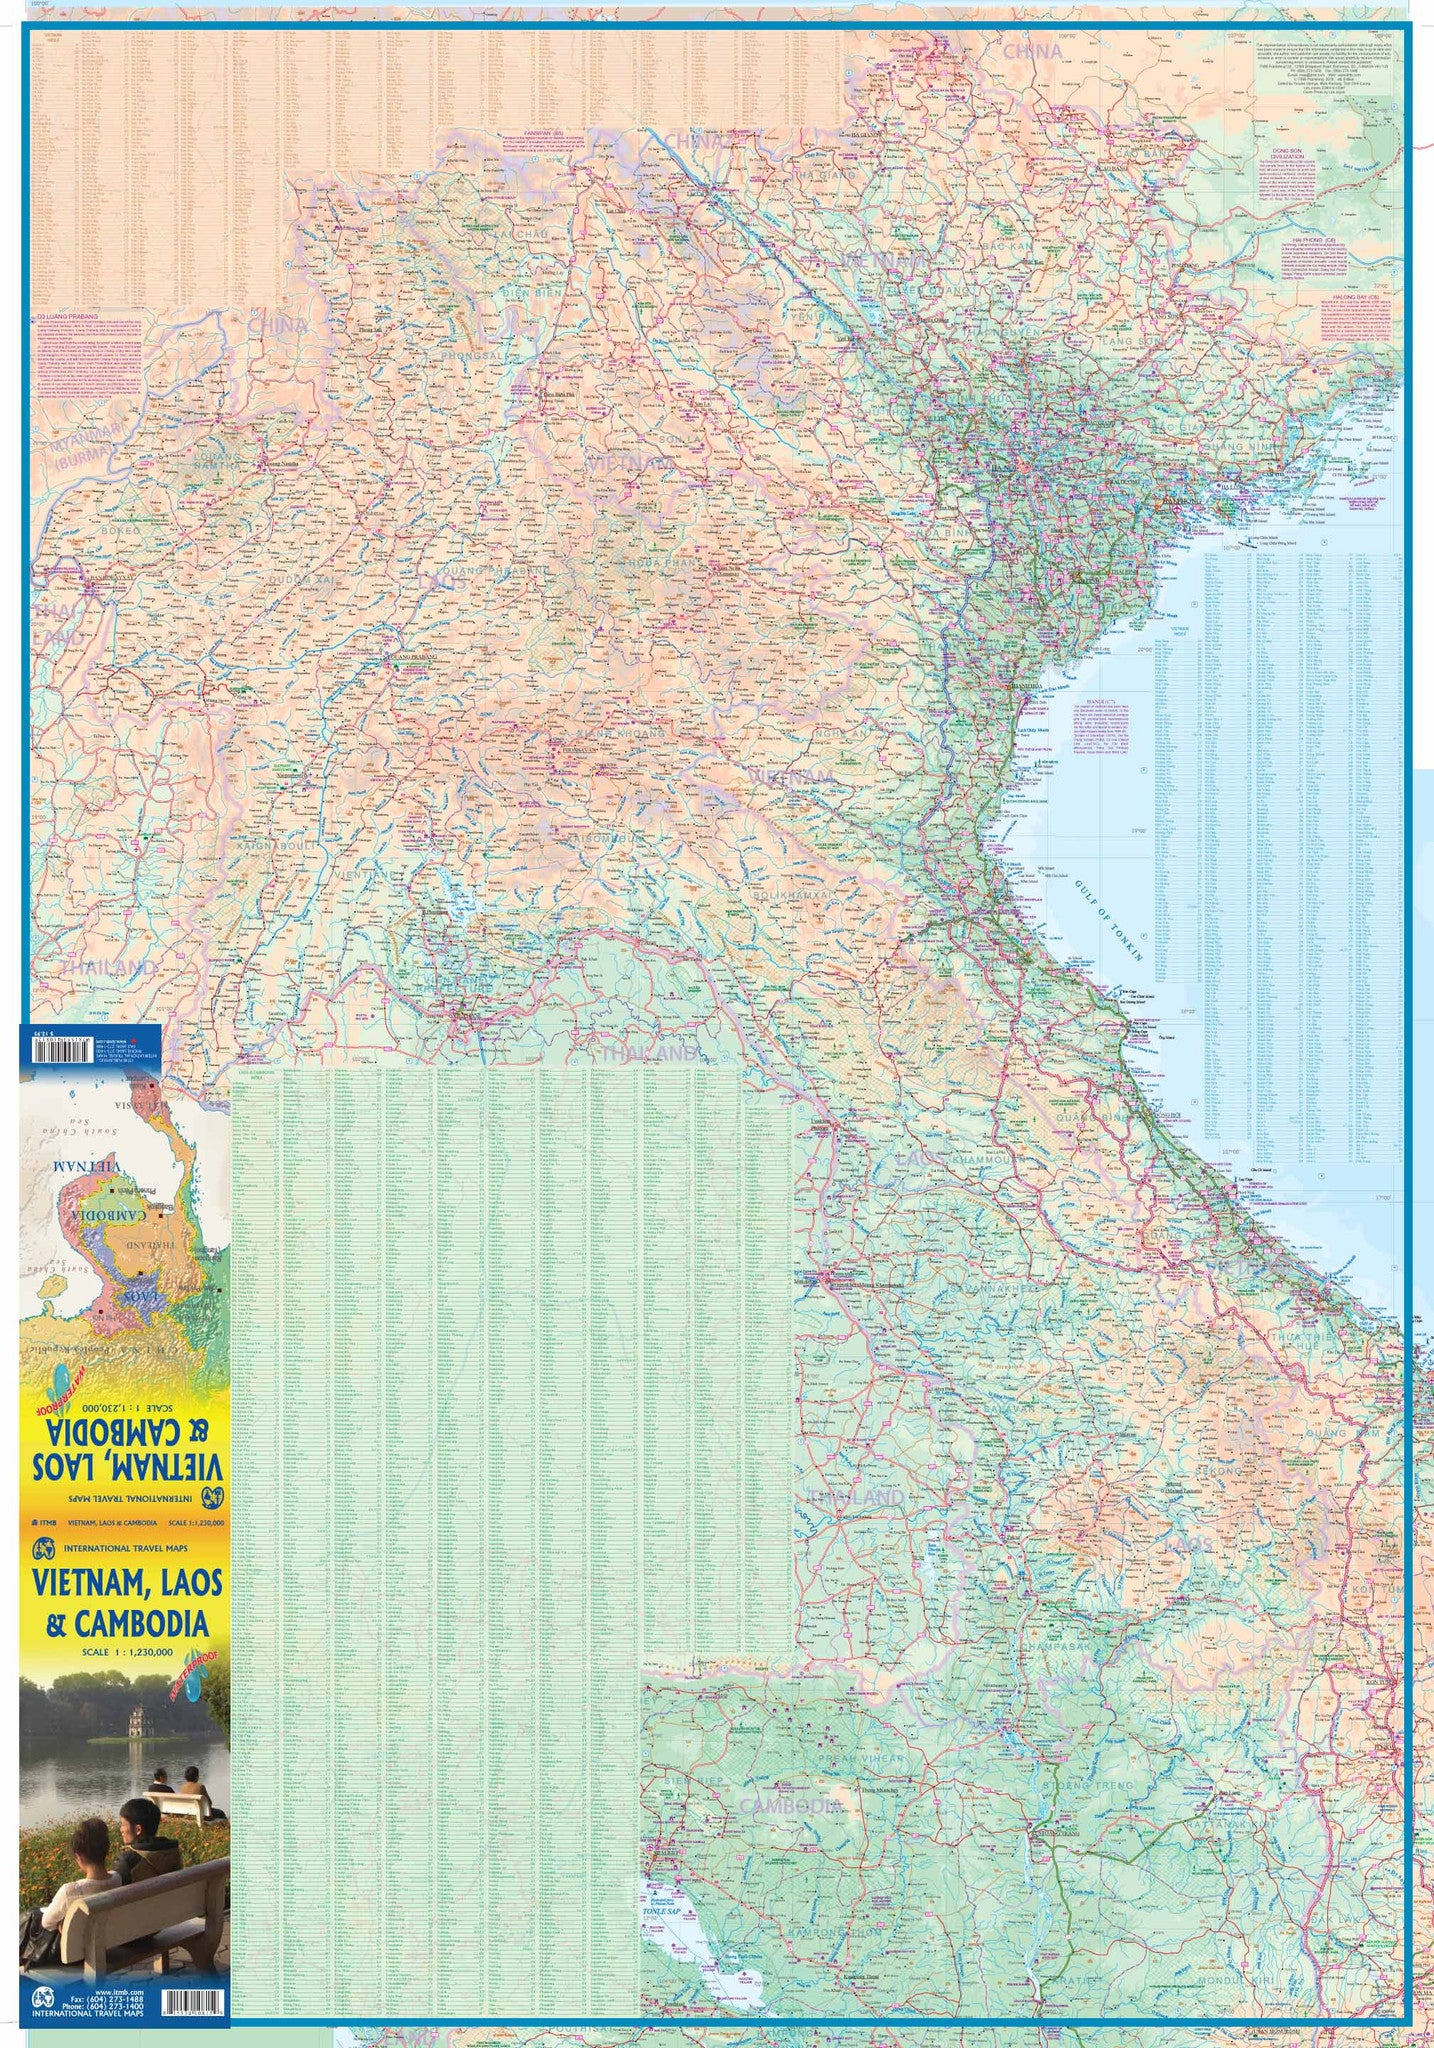 Vietnam Laos Cambodia Itmb Buy Map Of Vietnam Laos Cambodia